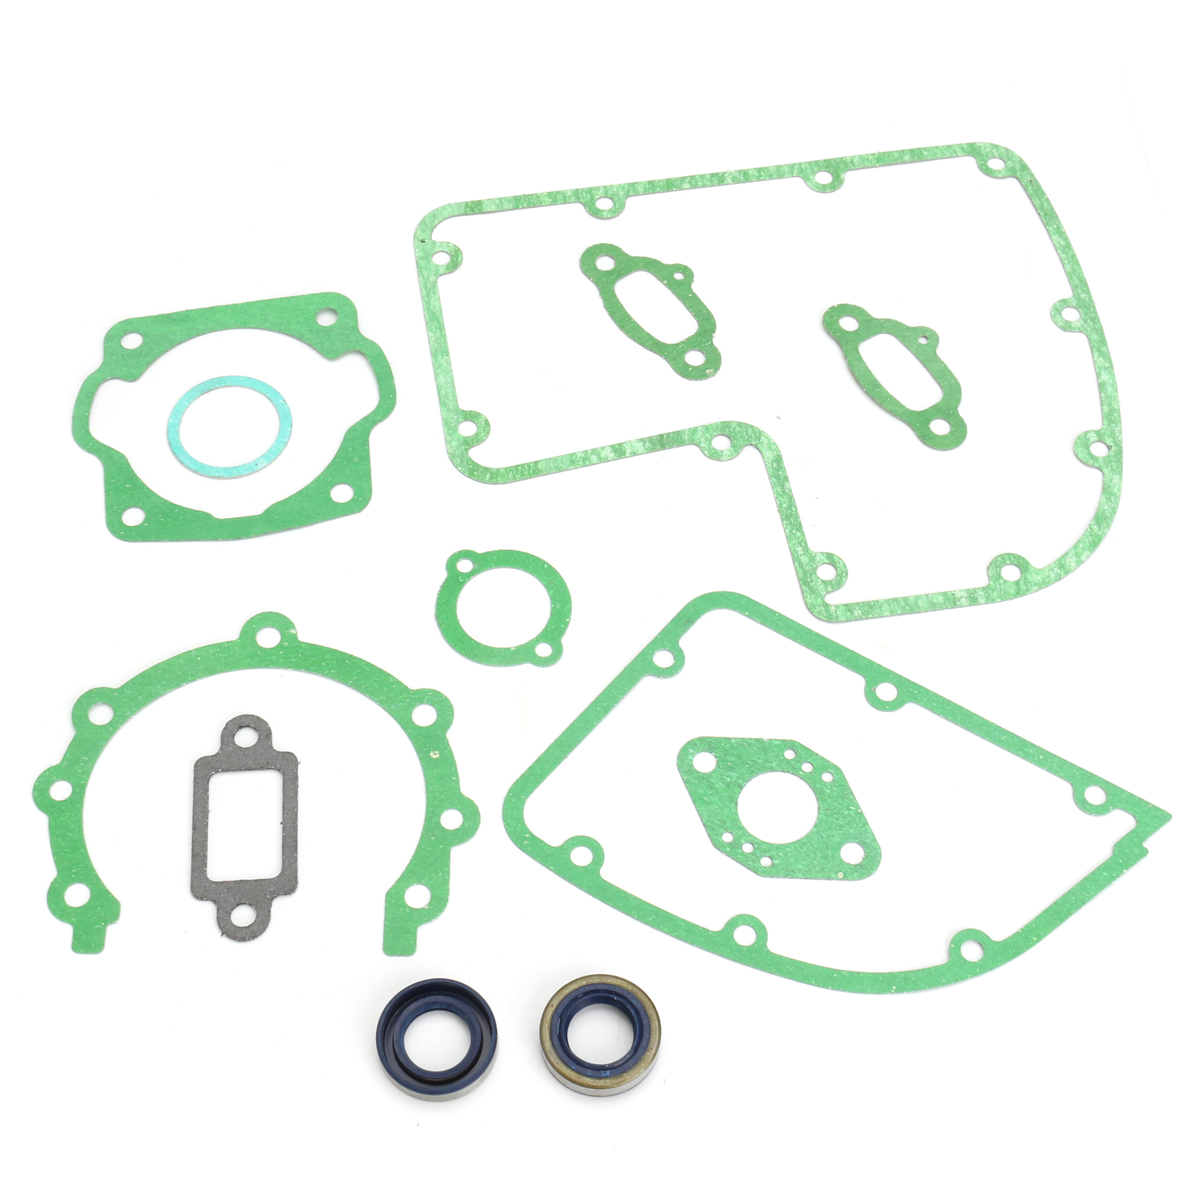 Full Gasket Oil Seal Set For STIHL 070 090 CHAINSAW REP OEM # 9640 003 1980